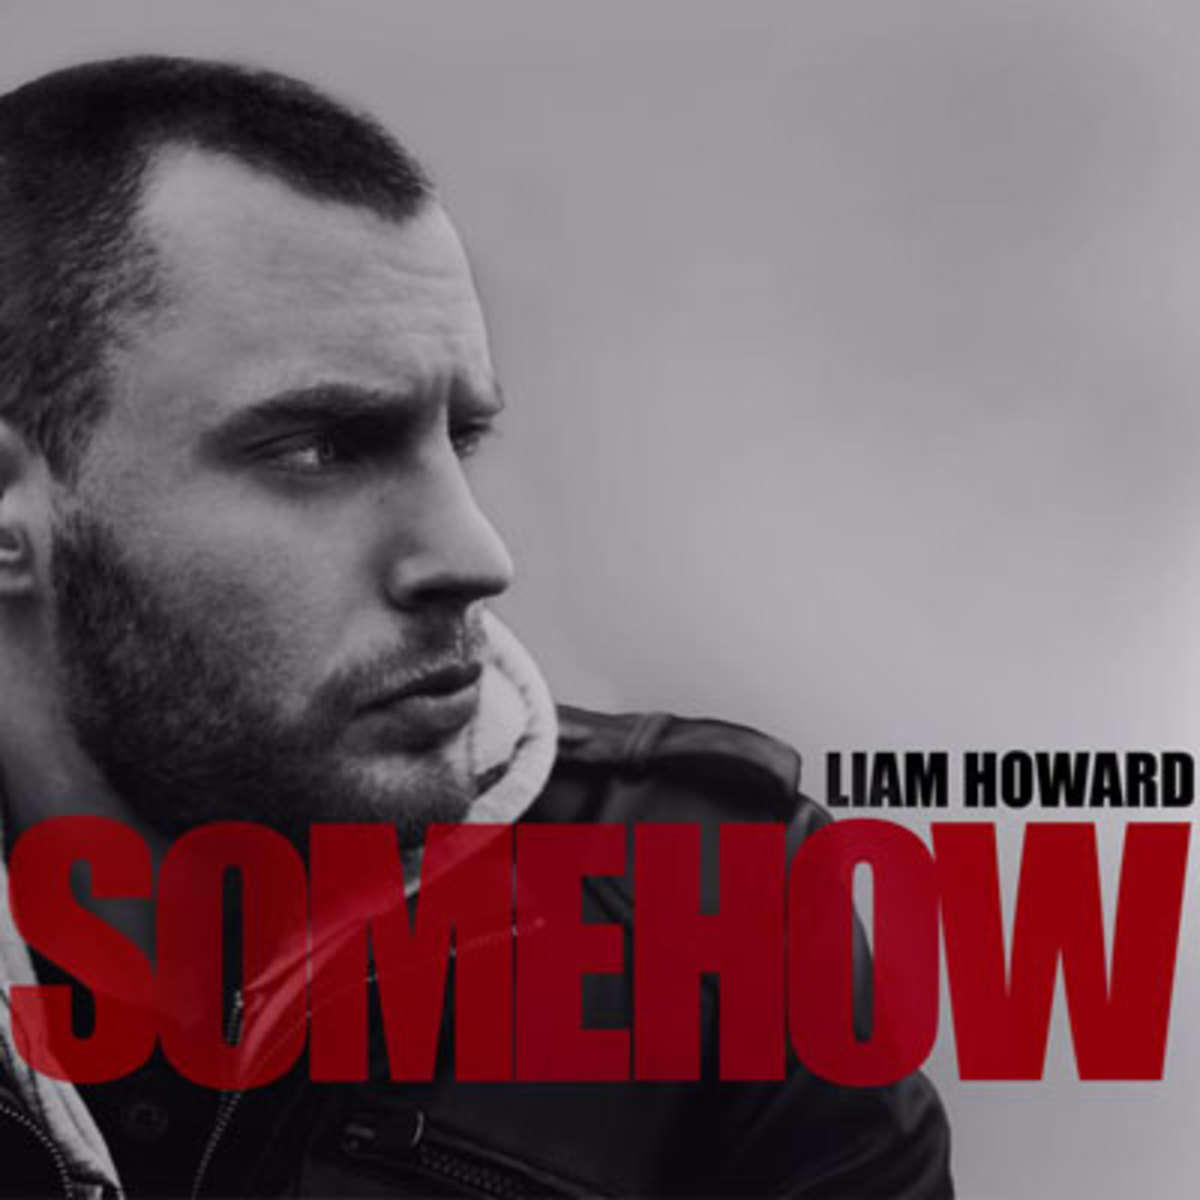 liamhoward-somehow.jpg